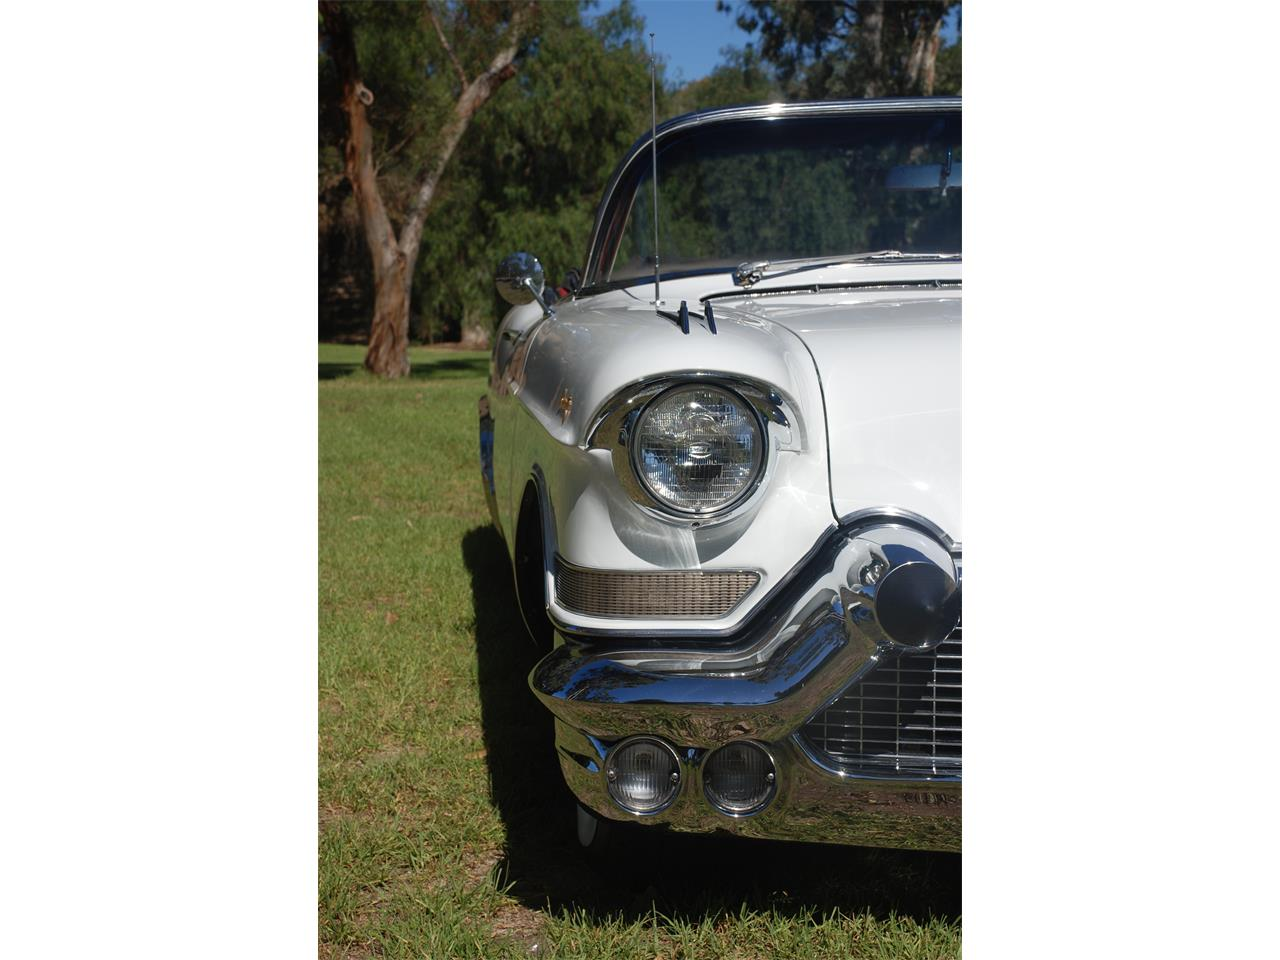 Large Picture of '57 Cadillac Eldorado Biarritz - $120,000.00 Offered by a Private Seller - I9YC